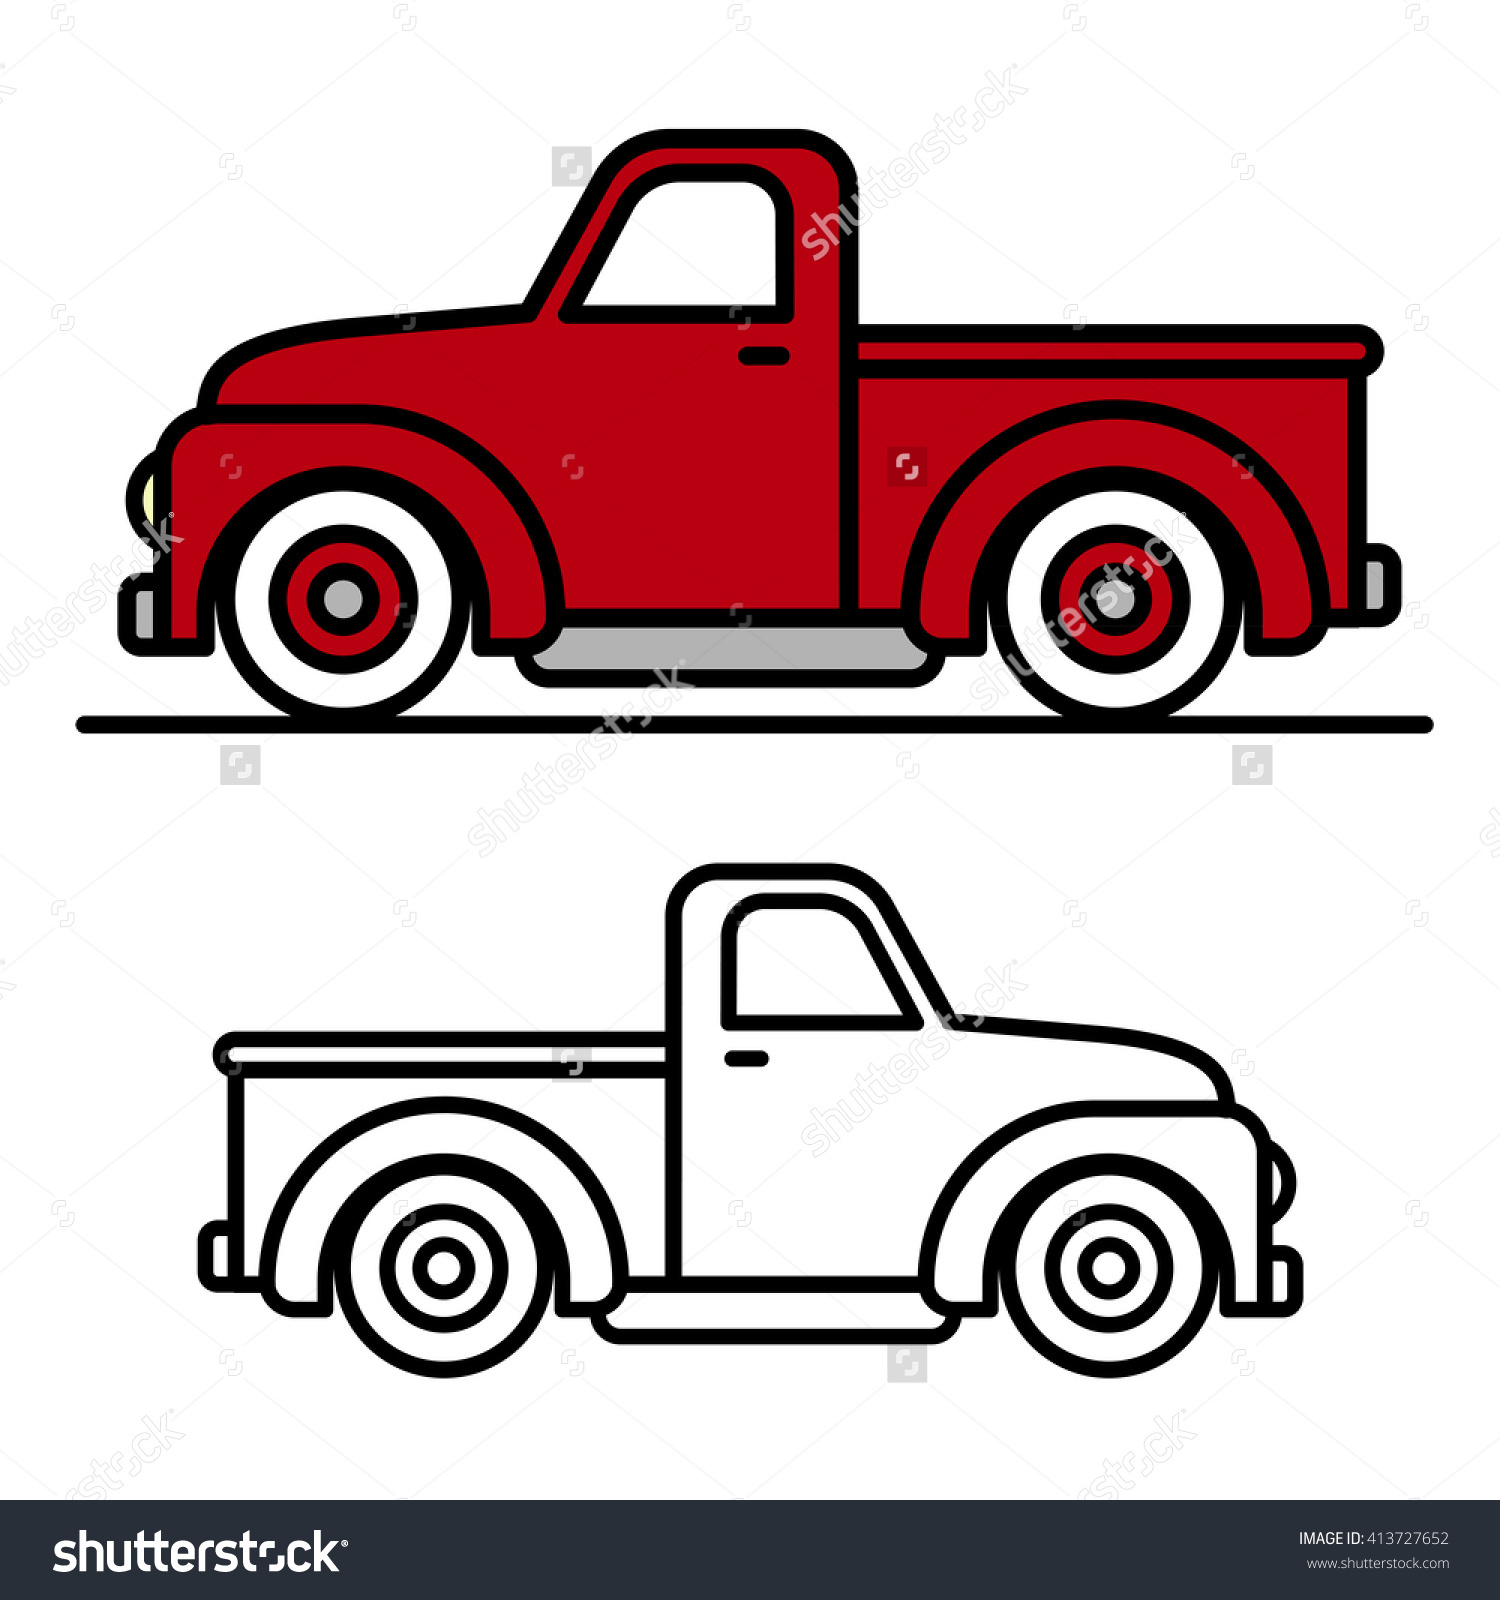 vintage truck clipart - Clipground